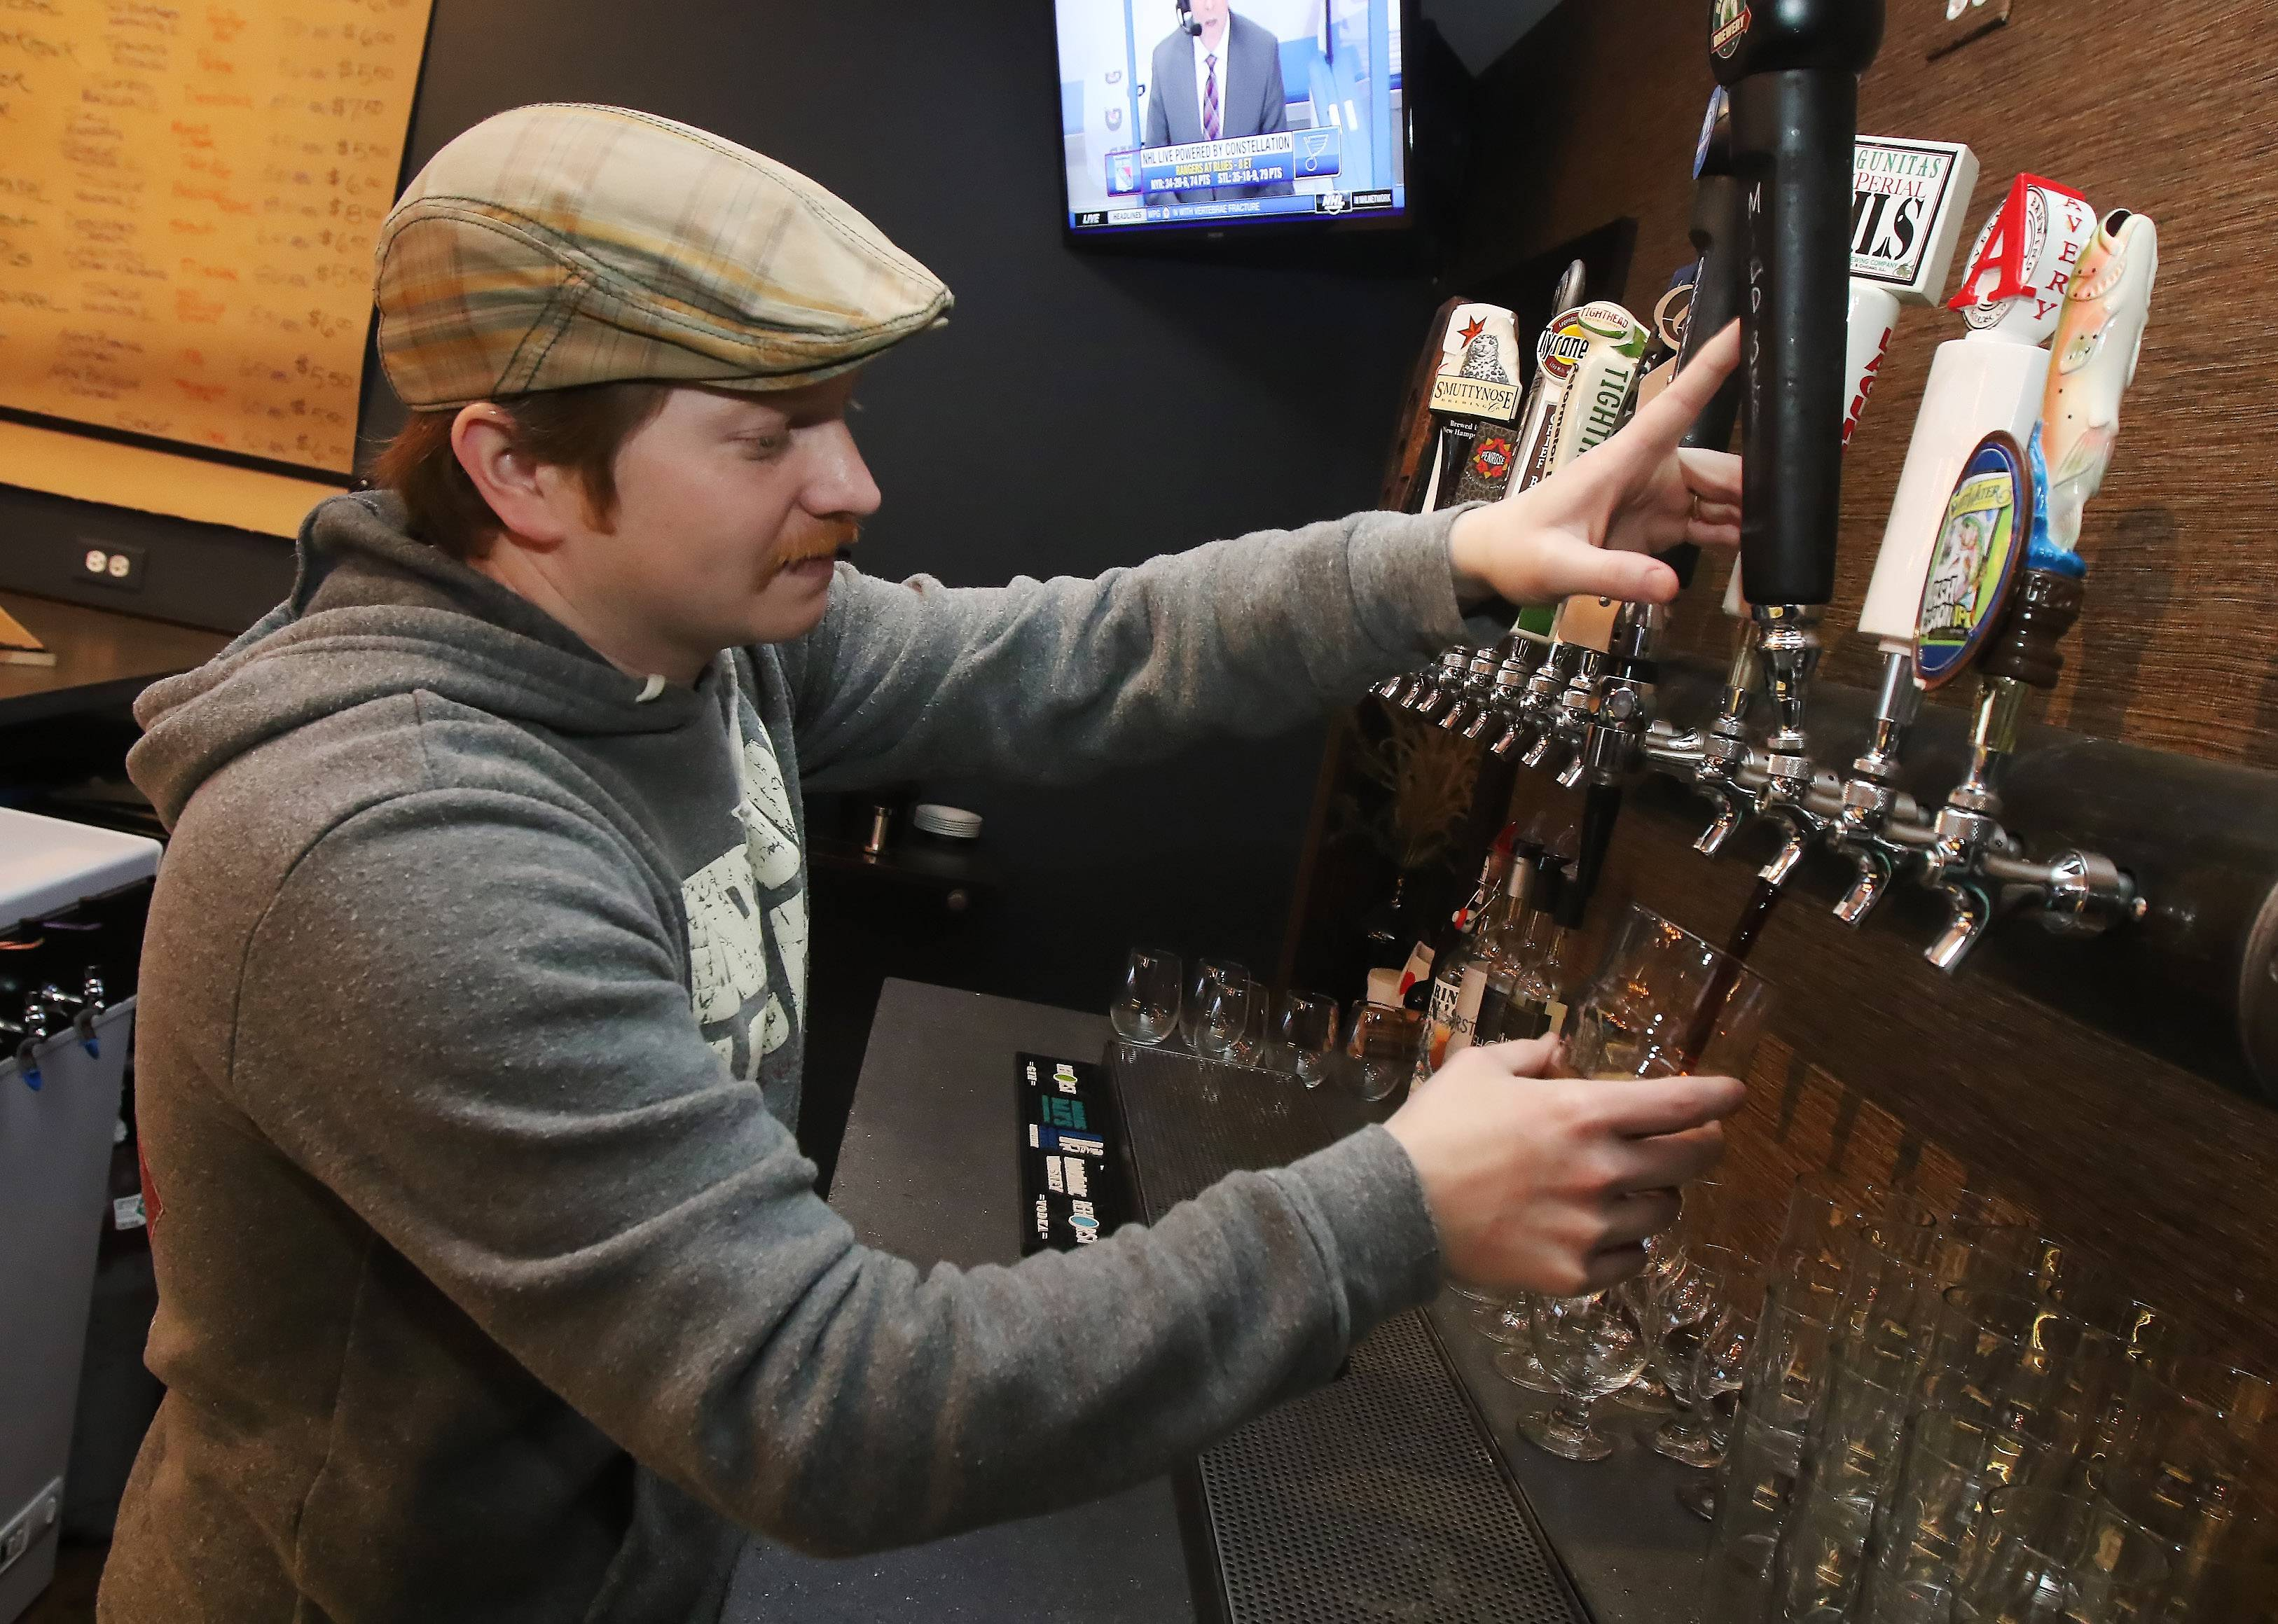 Jason Vucic pours a beer at Side Lot Brewery in Wauconda.